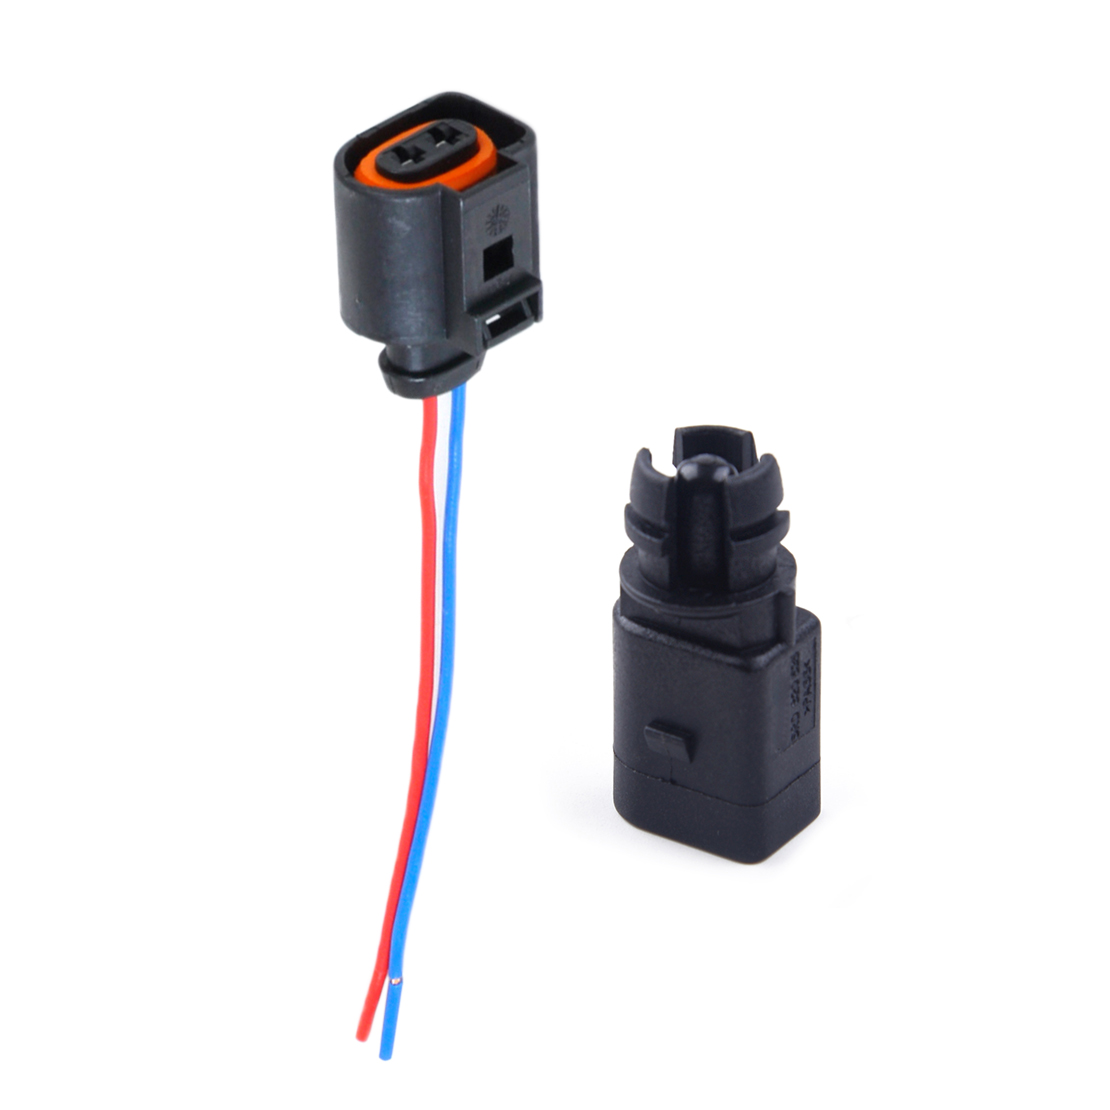 DWCX 2 Pin Ambient air temperature sensor & Electrical 2 Pin Connector Plug Wiring Harness 6RD820535 1J0973775A Fit for Audi VW